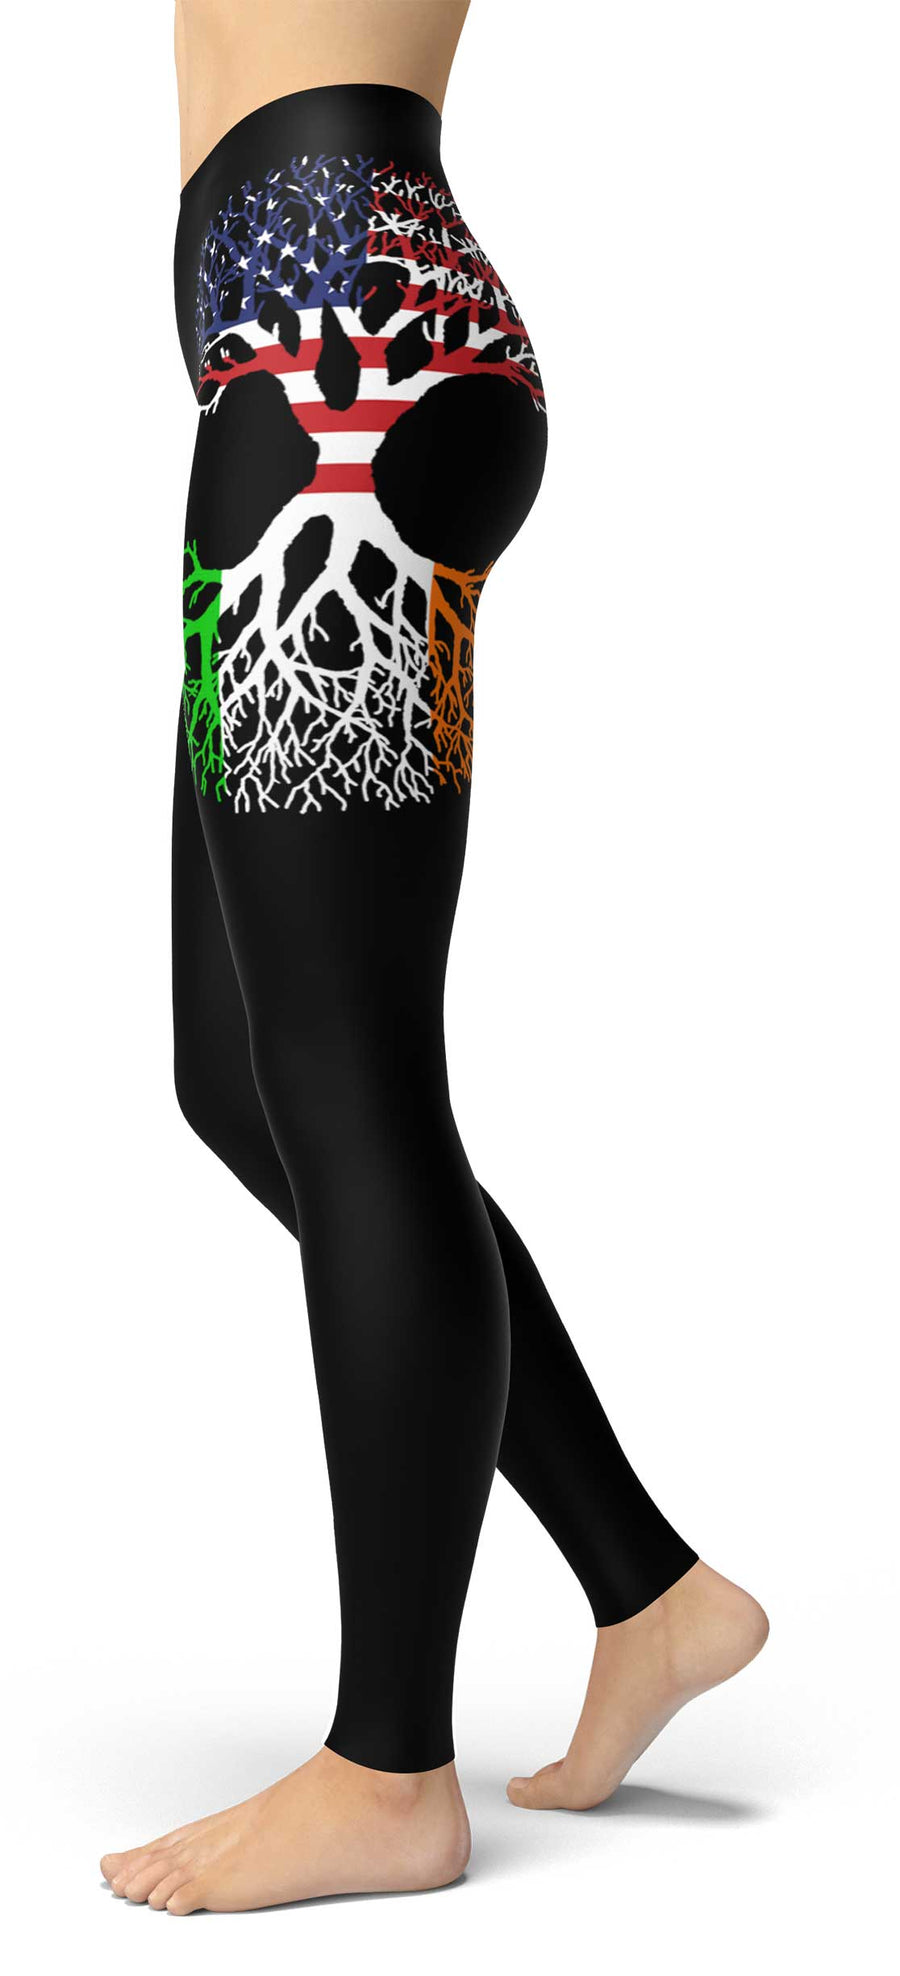 American Grown Irish Roots Leggings right